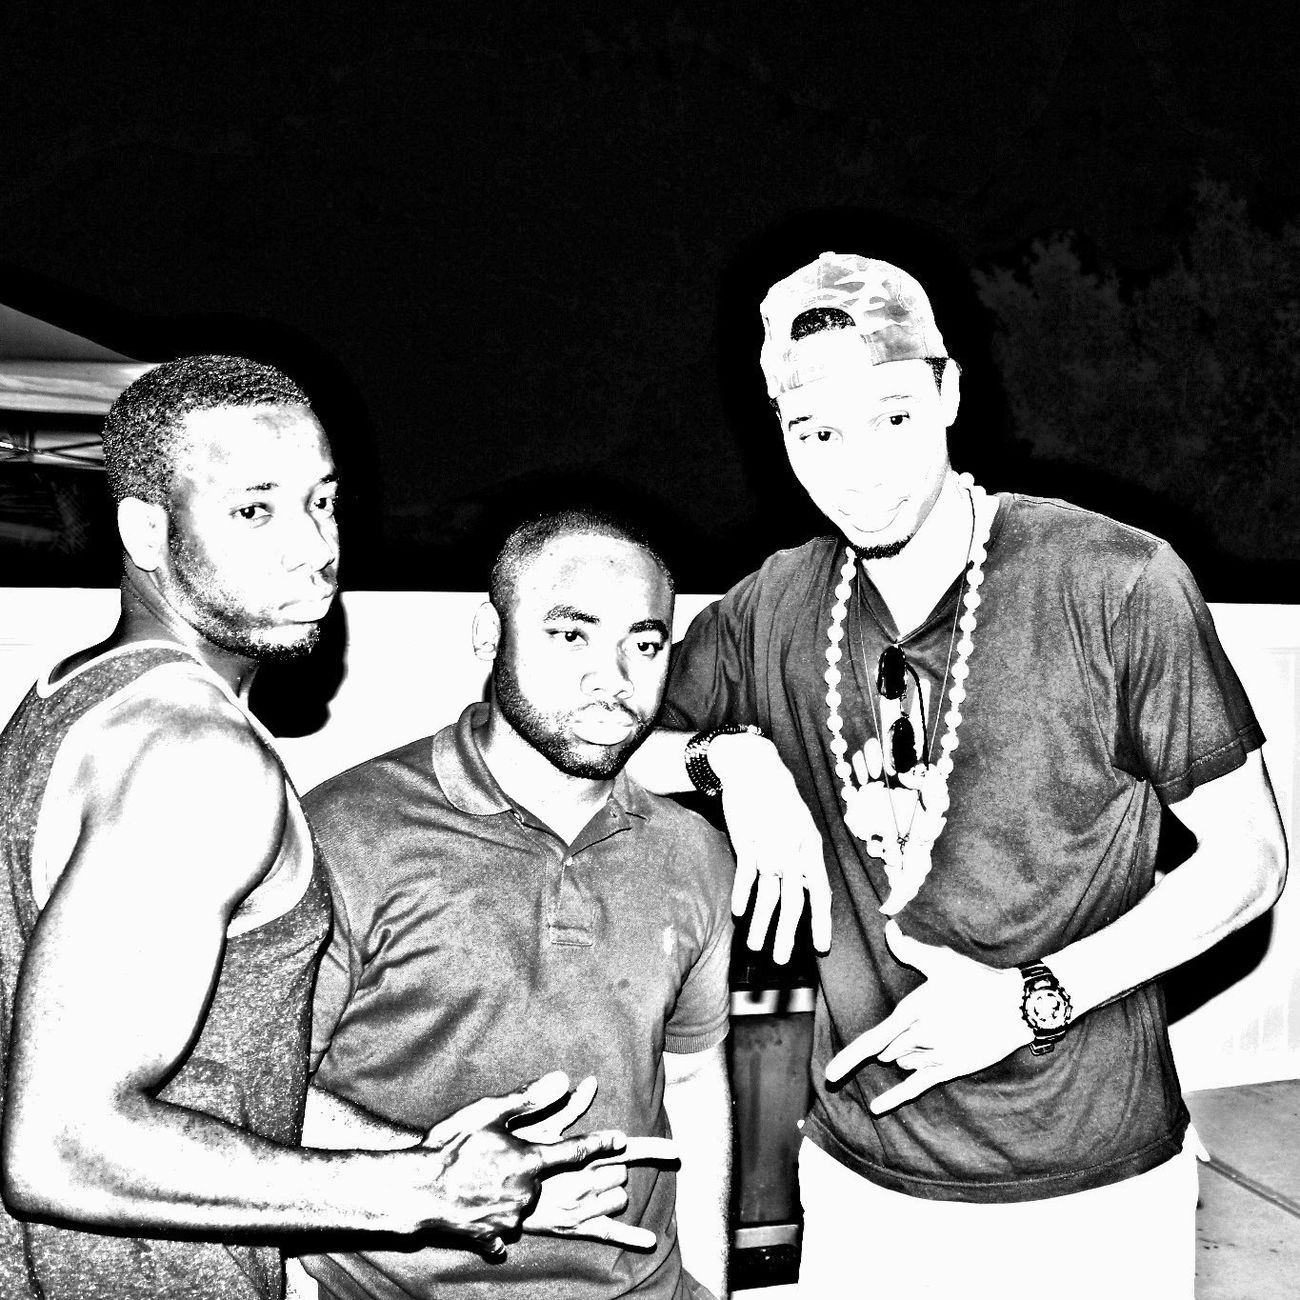 The Malik's overexposed Frat Life Black & White Cookout St. Albans